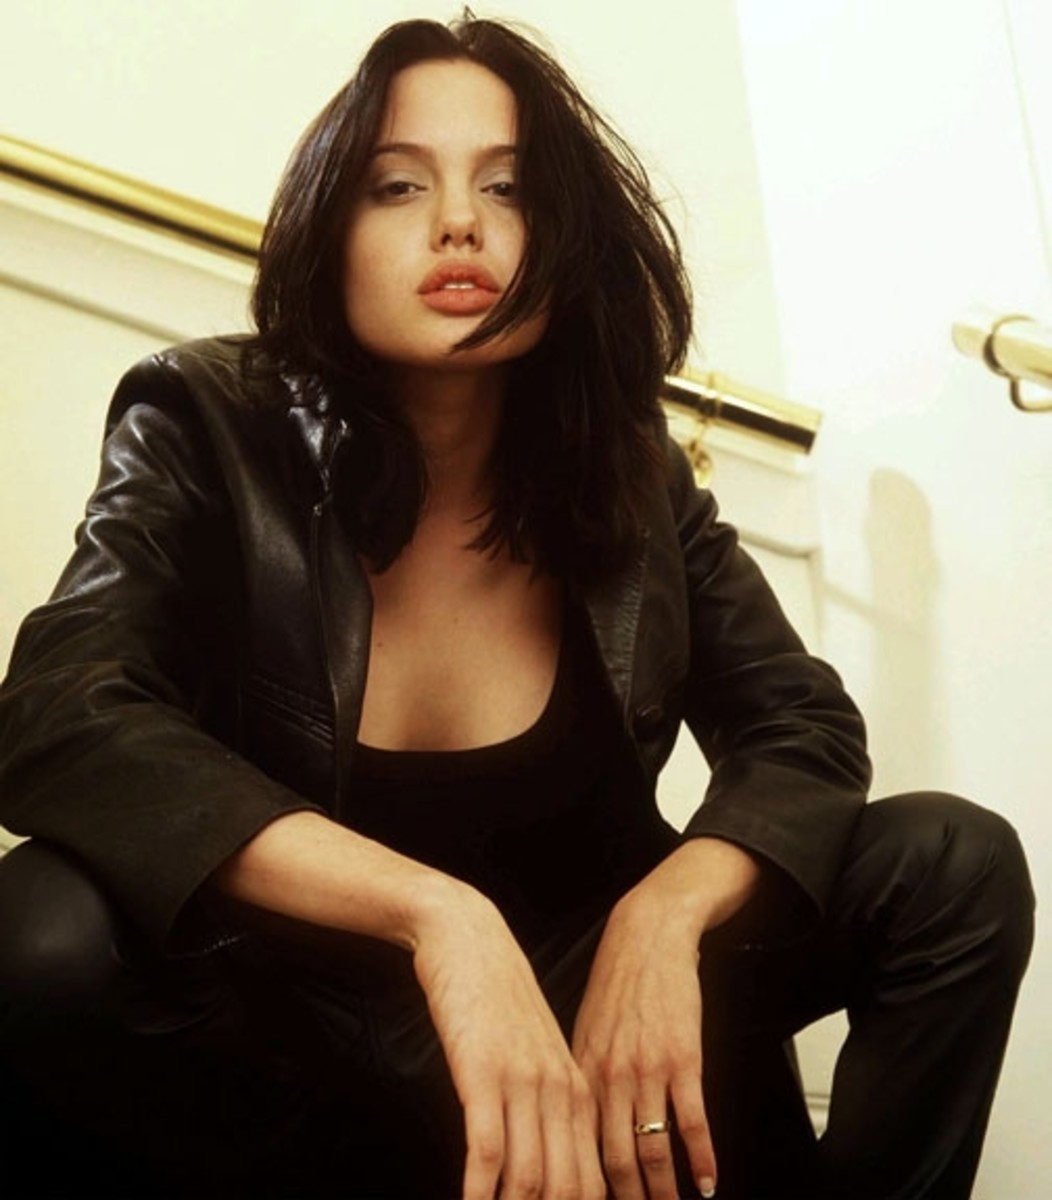 A young Angelina dressed all in black.